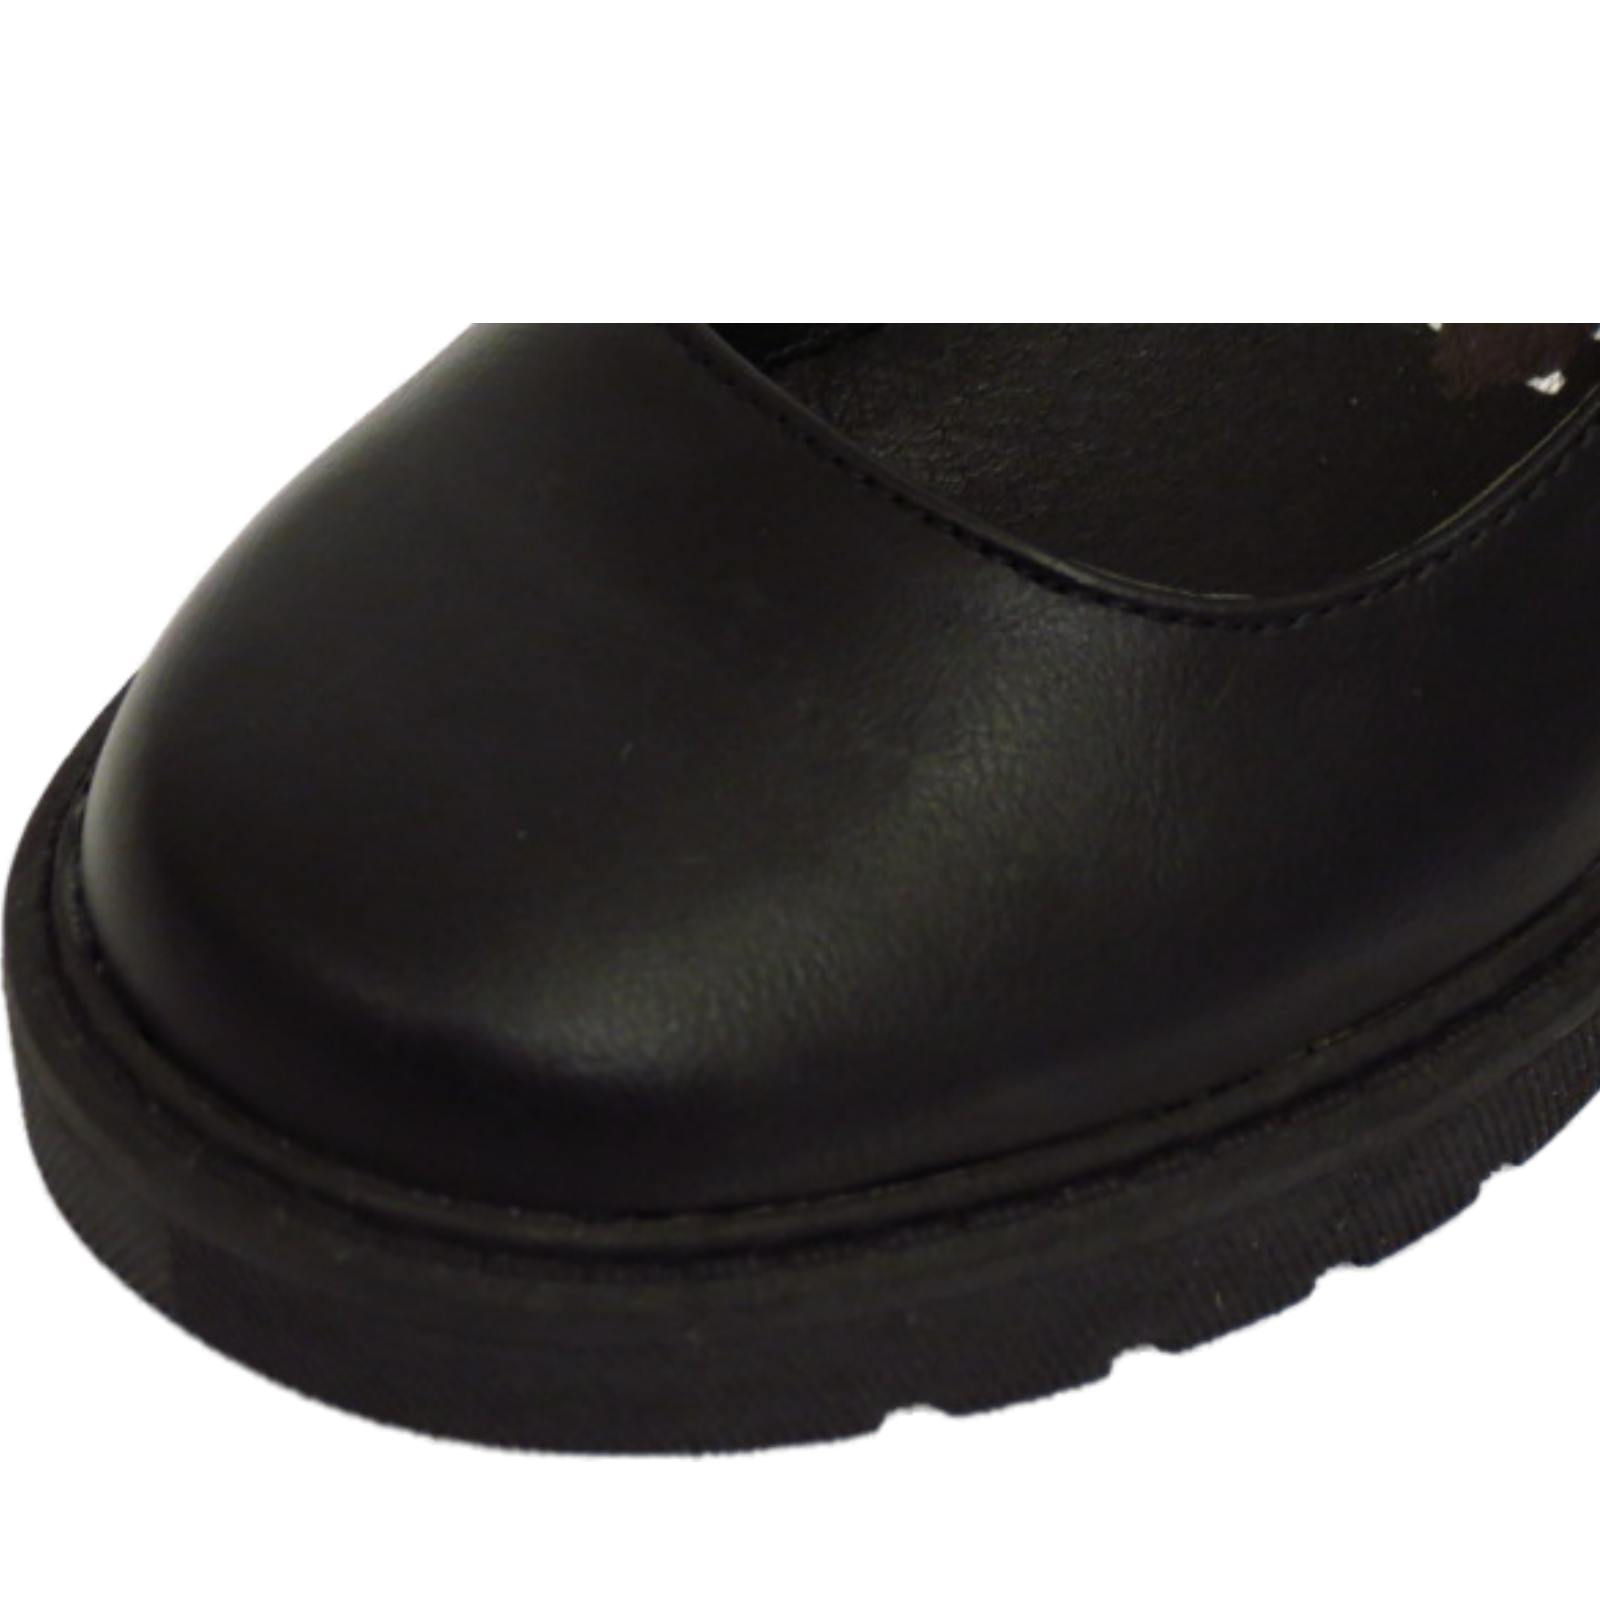 GIRLS-KIDS-CHILDRENS-BUCKLE-T-BAR-BLACK-SCHOOL-PUMPS-DOLLY-SMART-FLAT-SHOES-10-5 thumbnail 9